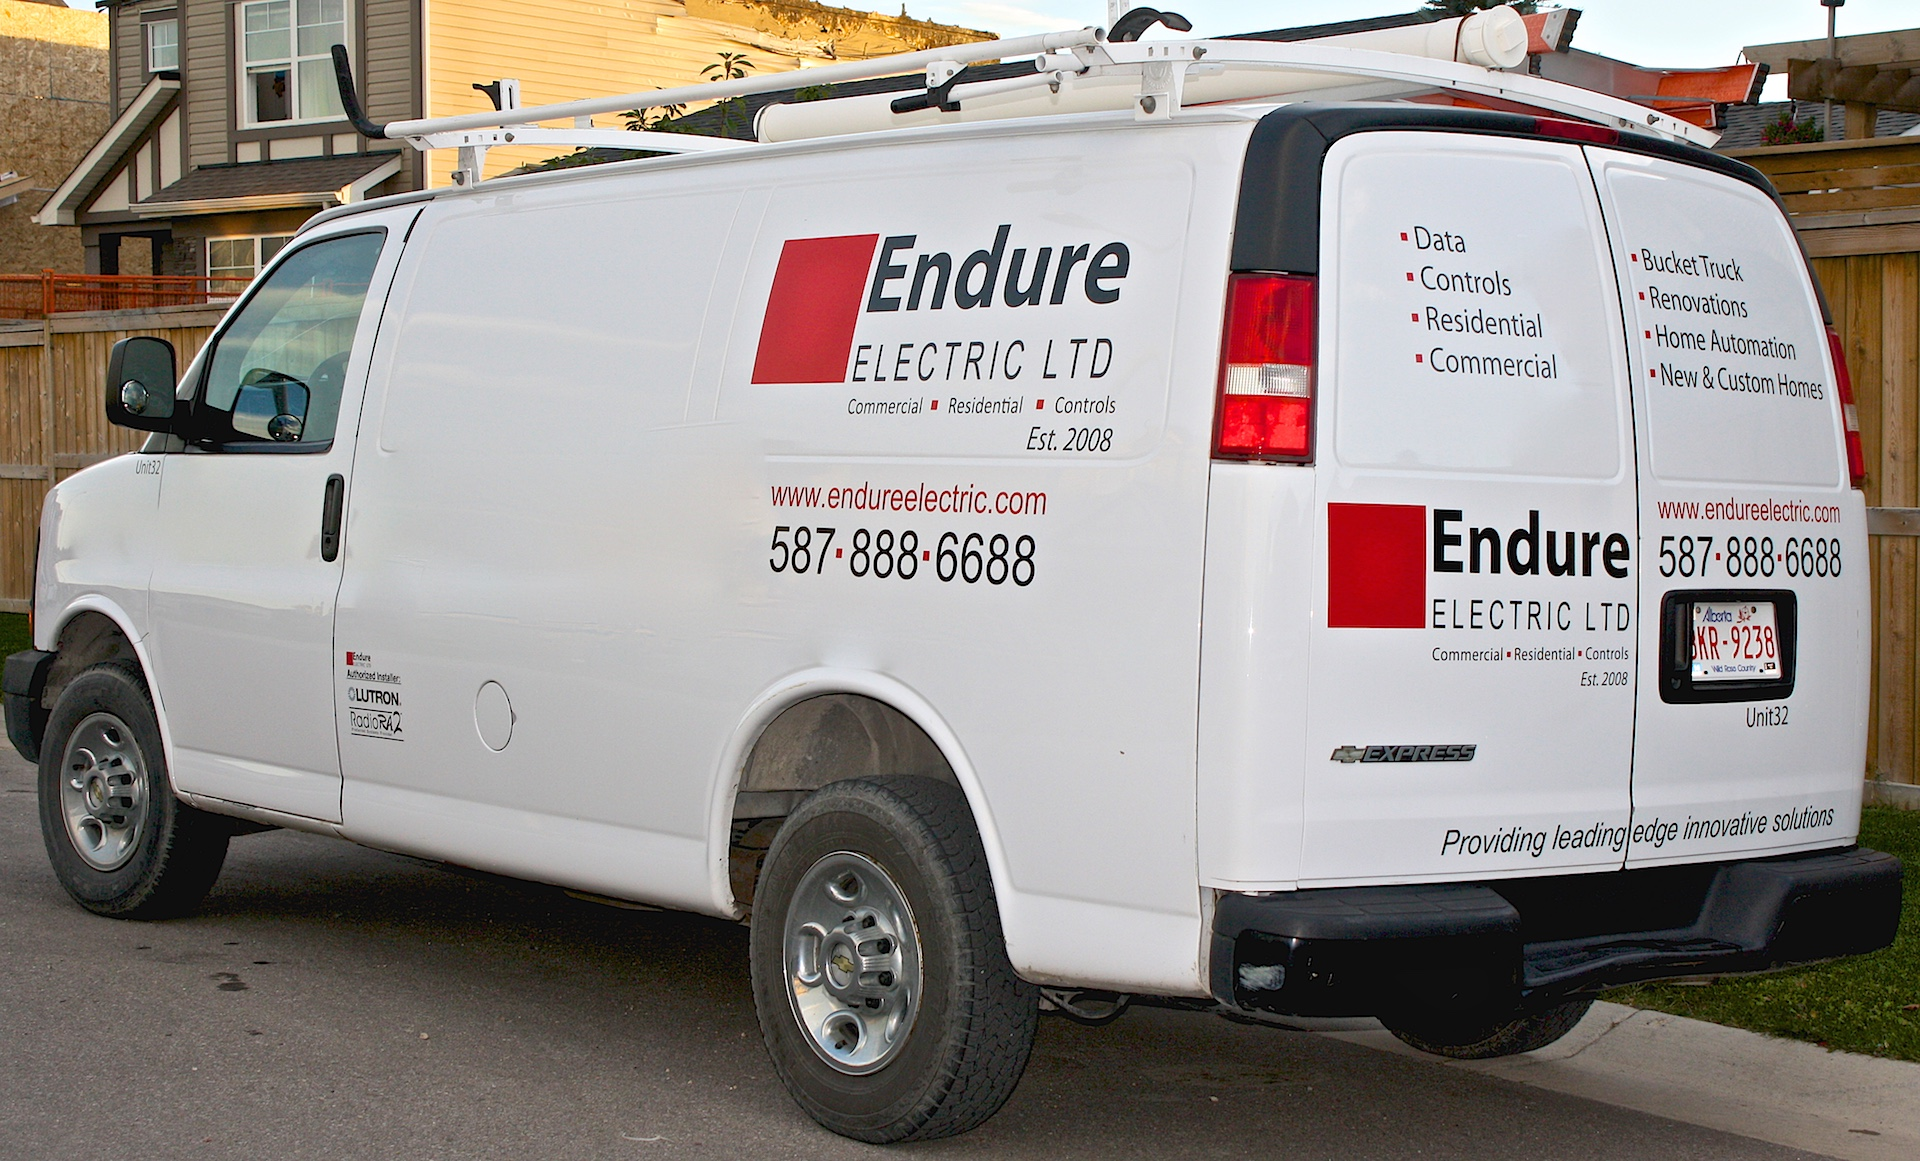 Endure Electric